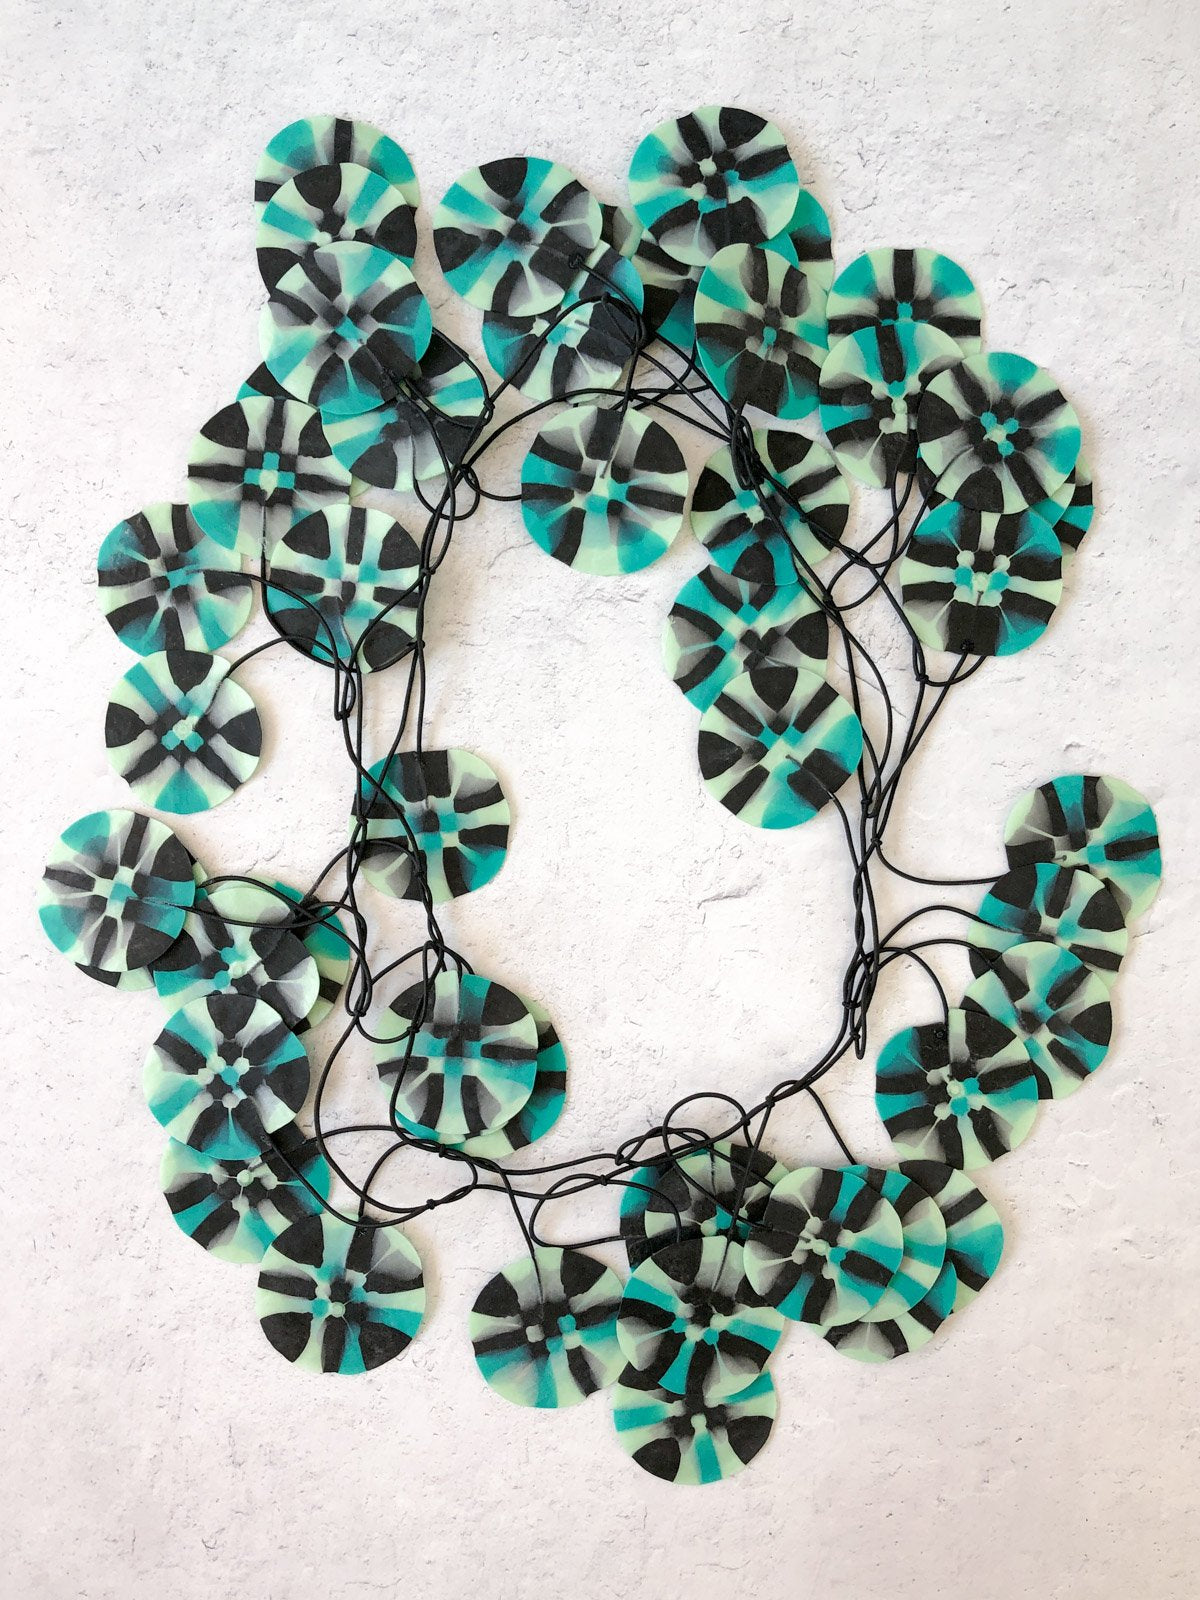 Ekeimenna By Annemieke Broenink - Huge Recycled Pansy Necklace - Aqua Green